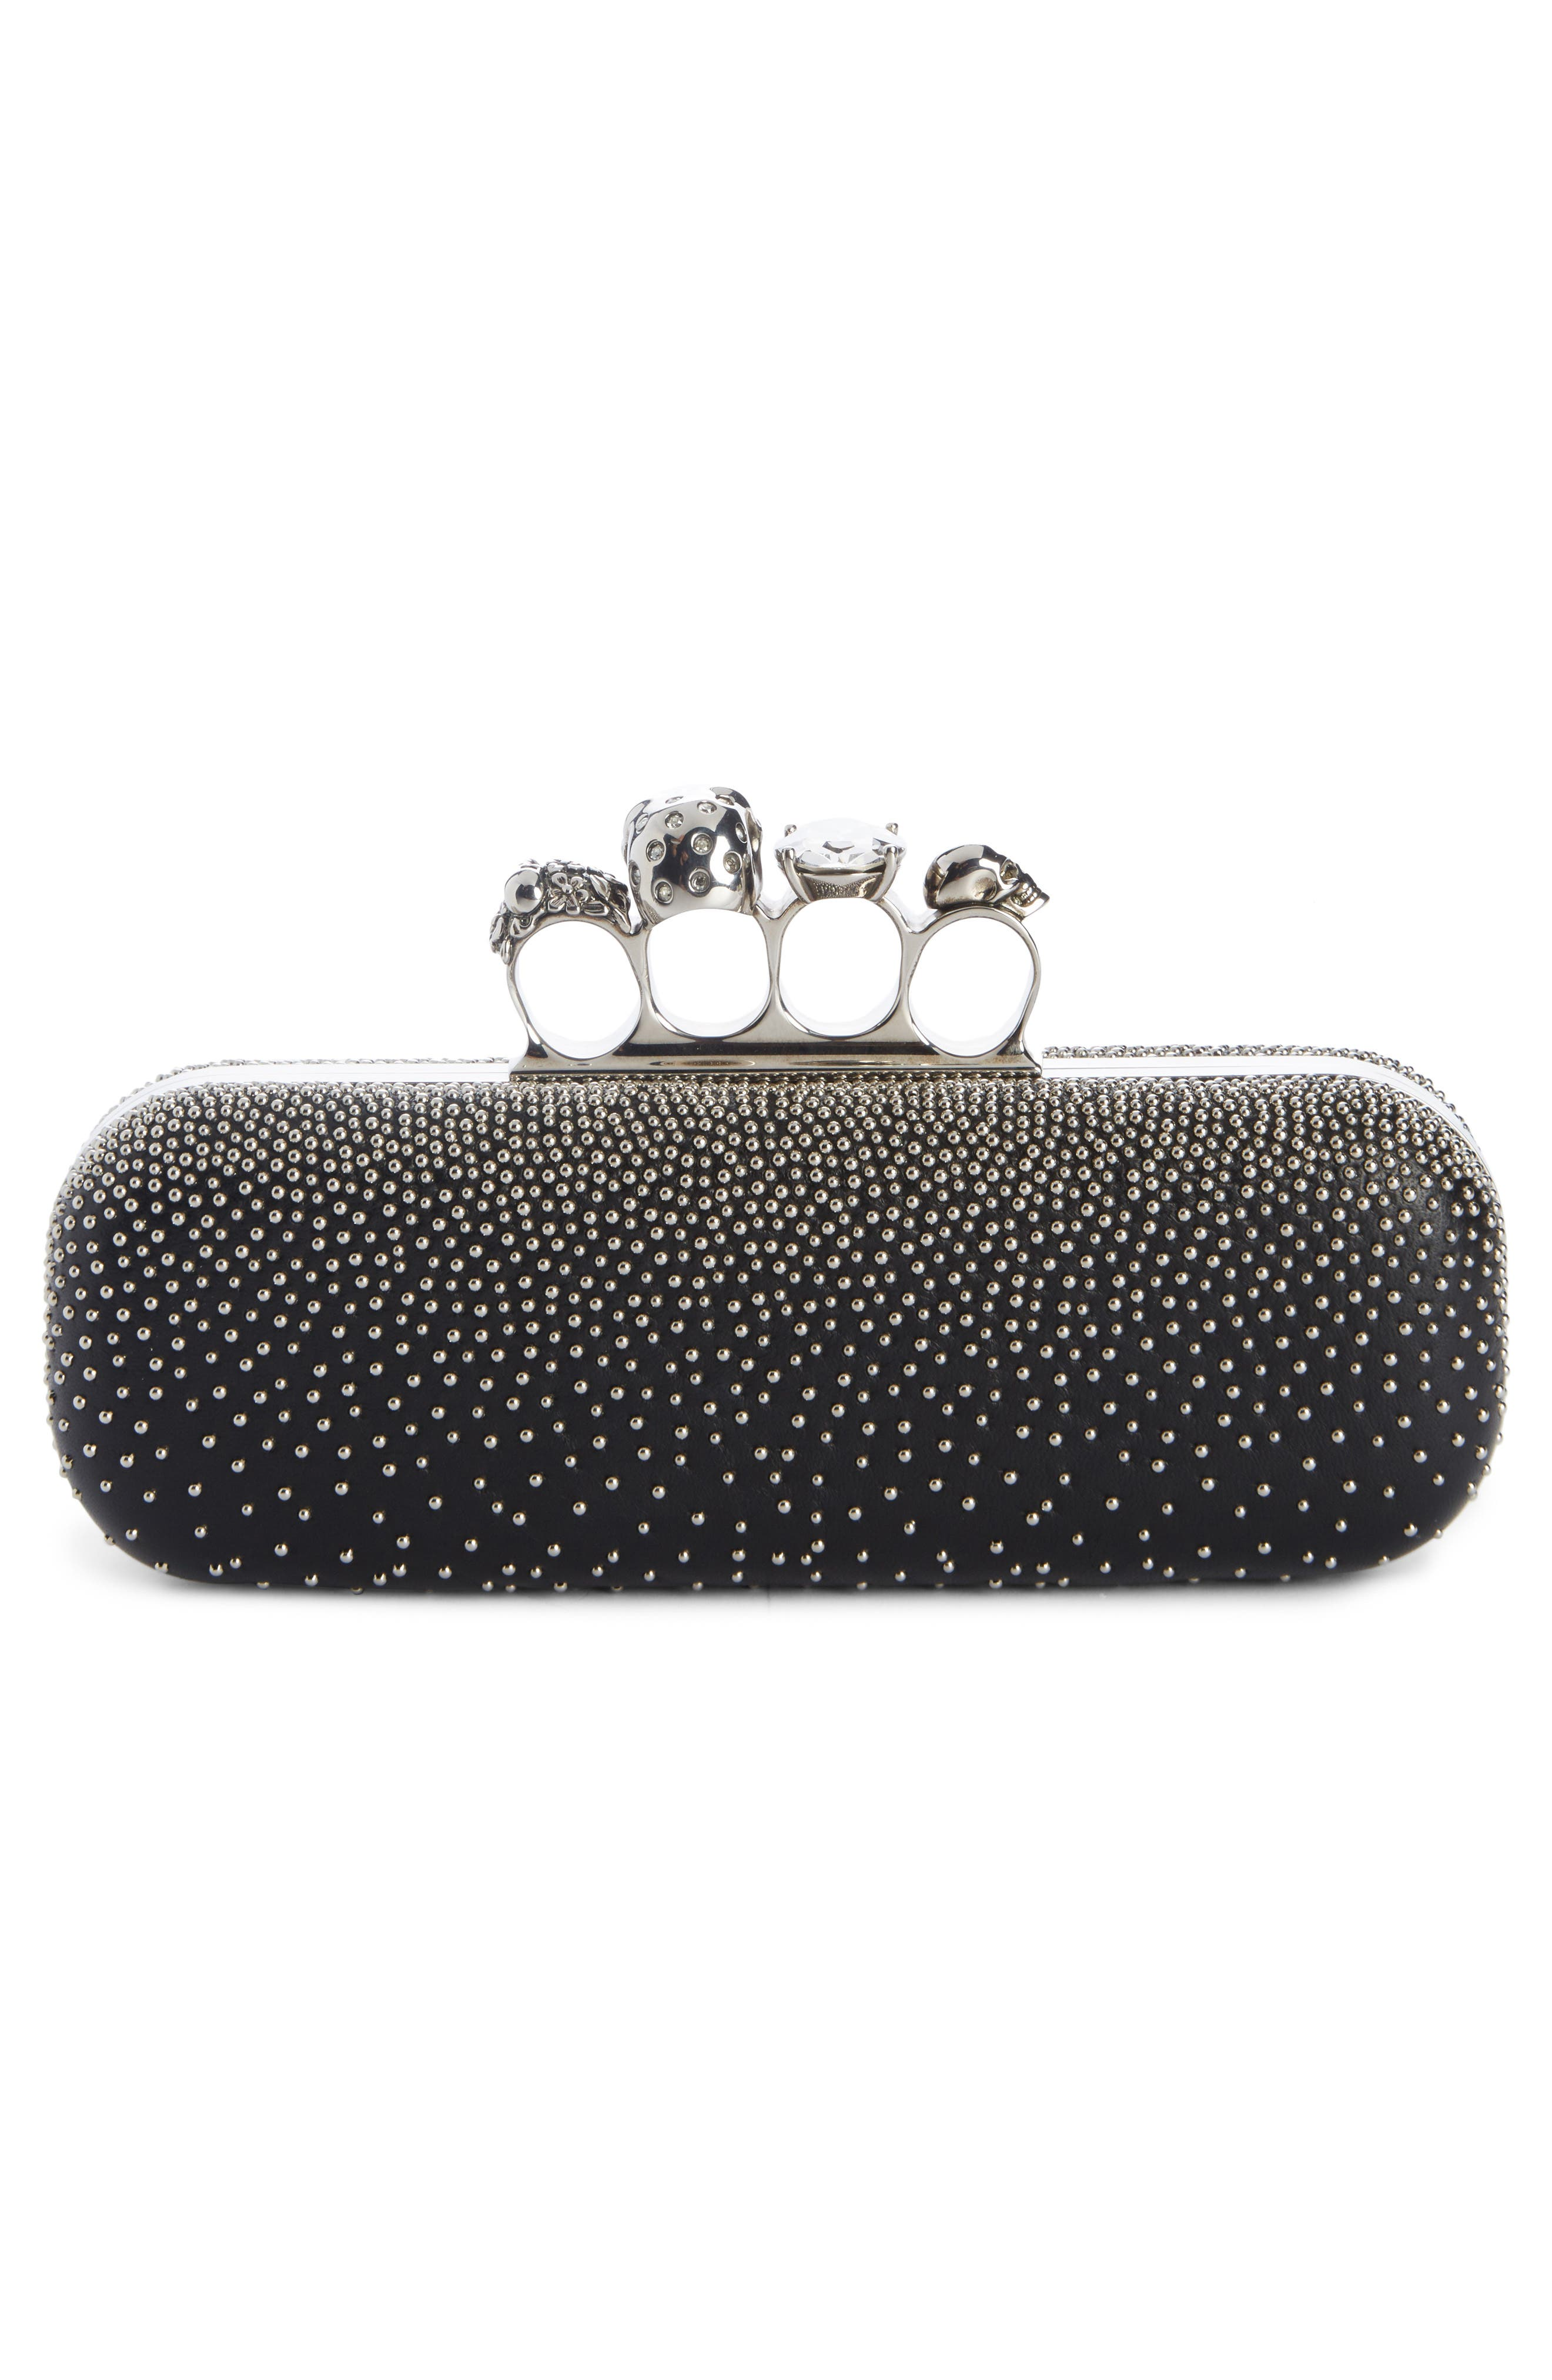 Studded Lambskin Leather Knuckle Clutch,                             Alternate thumbnail 2, color,                             BLACK